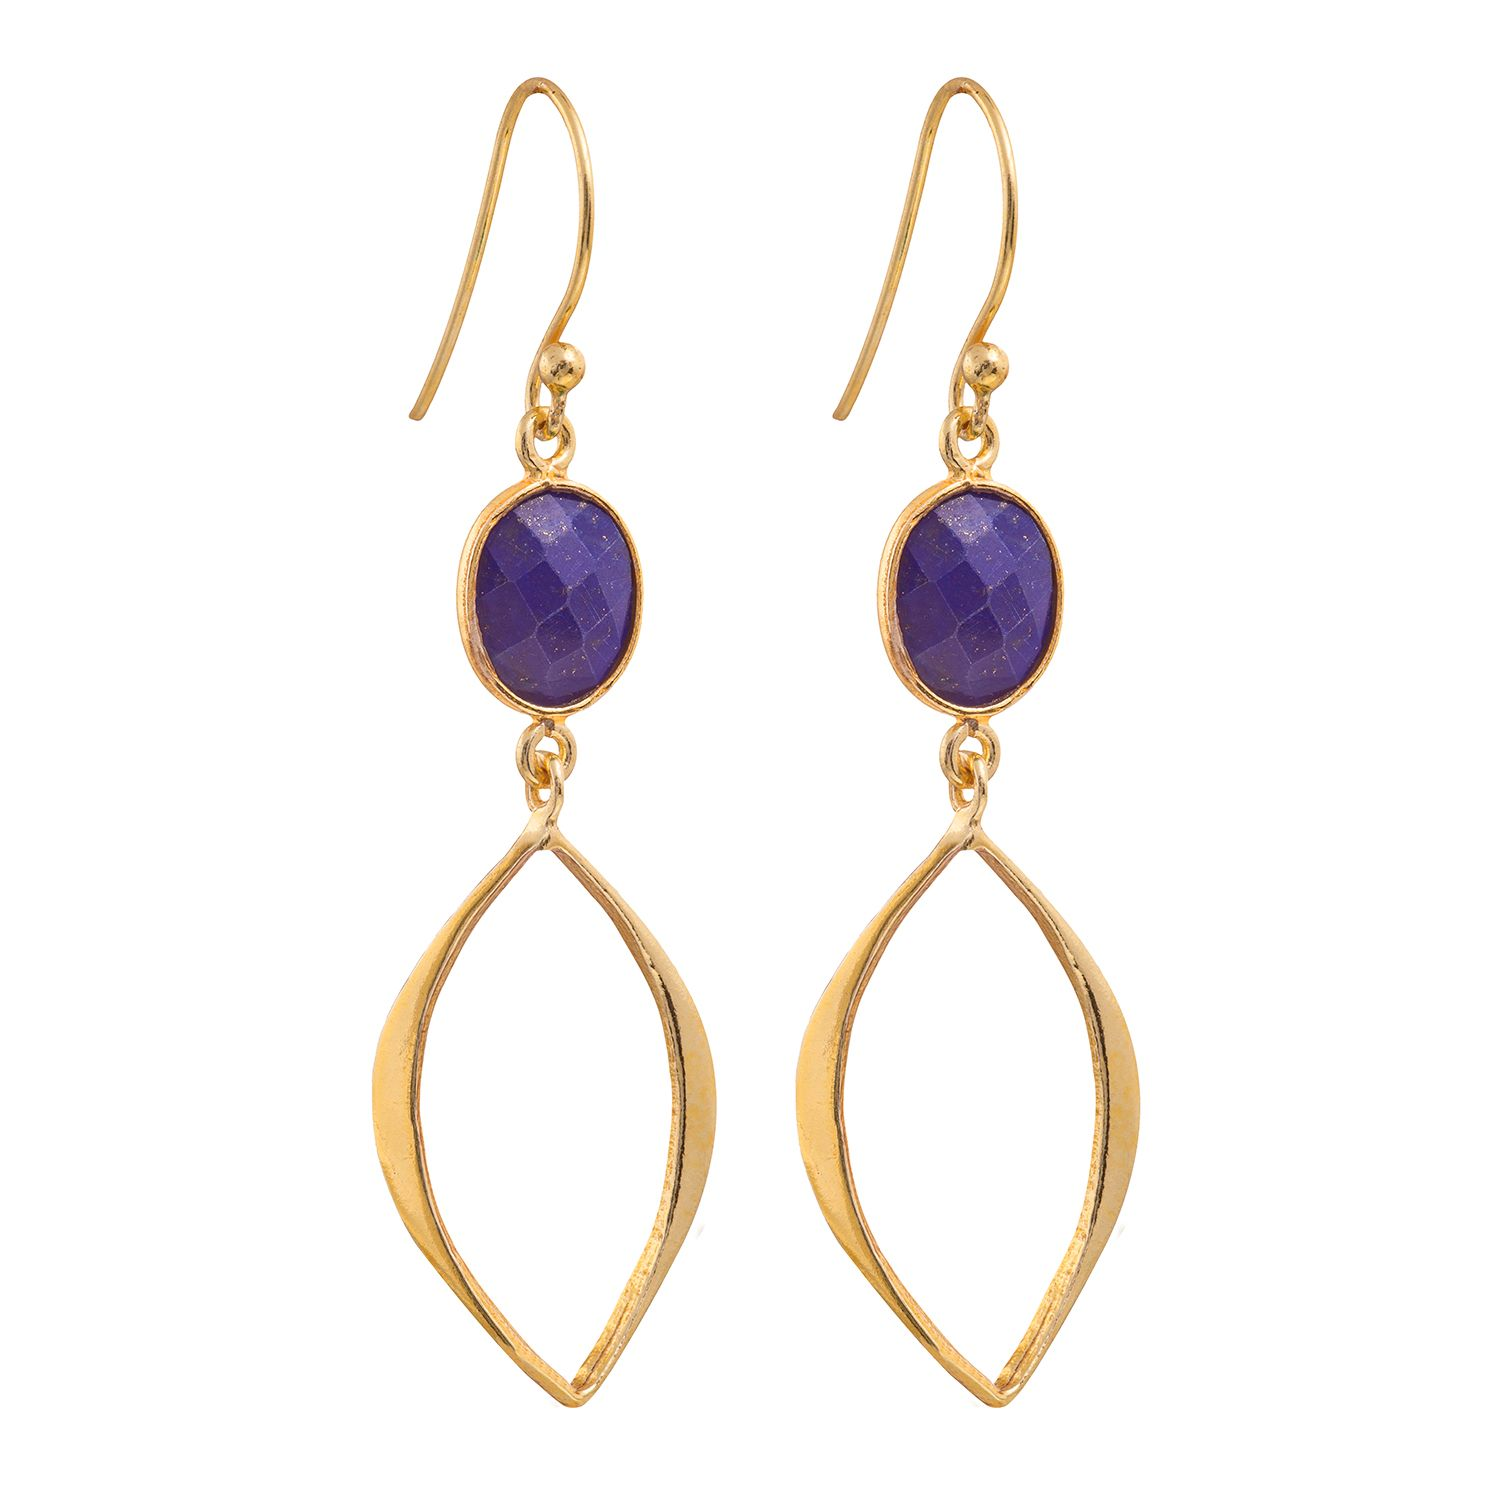 Juvi Designs Gold vermeil boho cat eye earrings, Blue